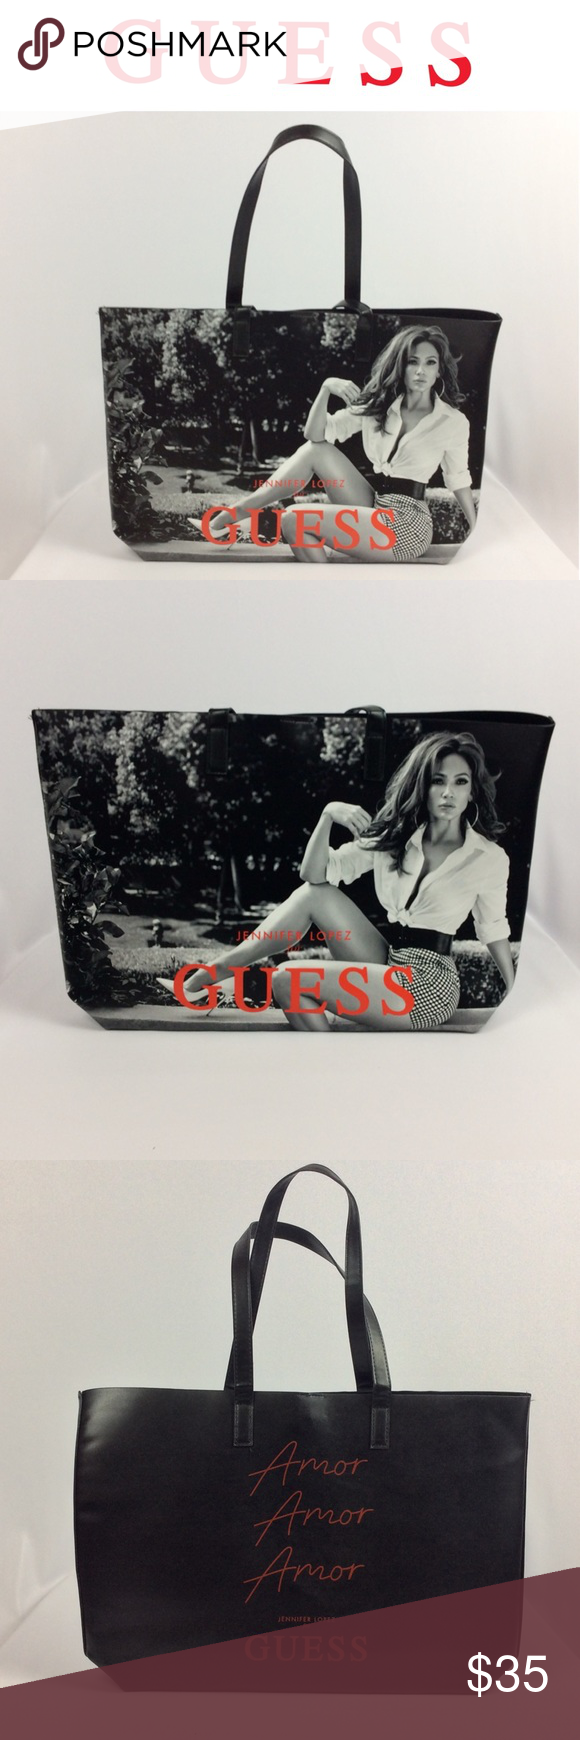 GUESS | JLO TOTE BAG NWOT Jennifer Lopez Guess exclusive 'Amor' tote bag Perfect for carry all, beach tote, book bag, laptop bag, etc Middle snap  Black, with black and white picture of Jlo  Red writing Faux leather material  Approximately 19 X 12.5 inches inches Please feel free to ask any questions you may have. Thank you! Guess Bags Totes